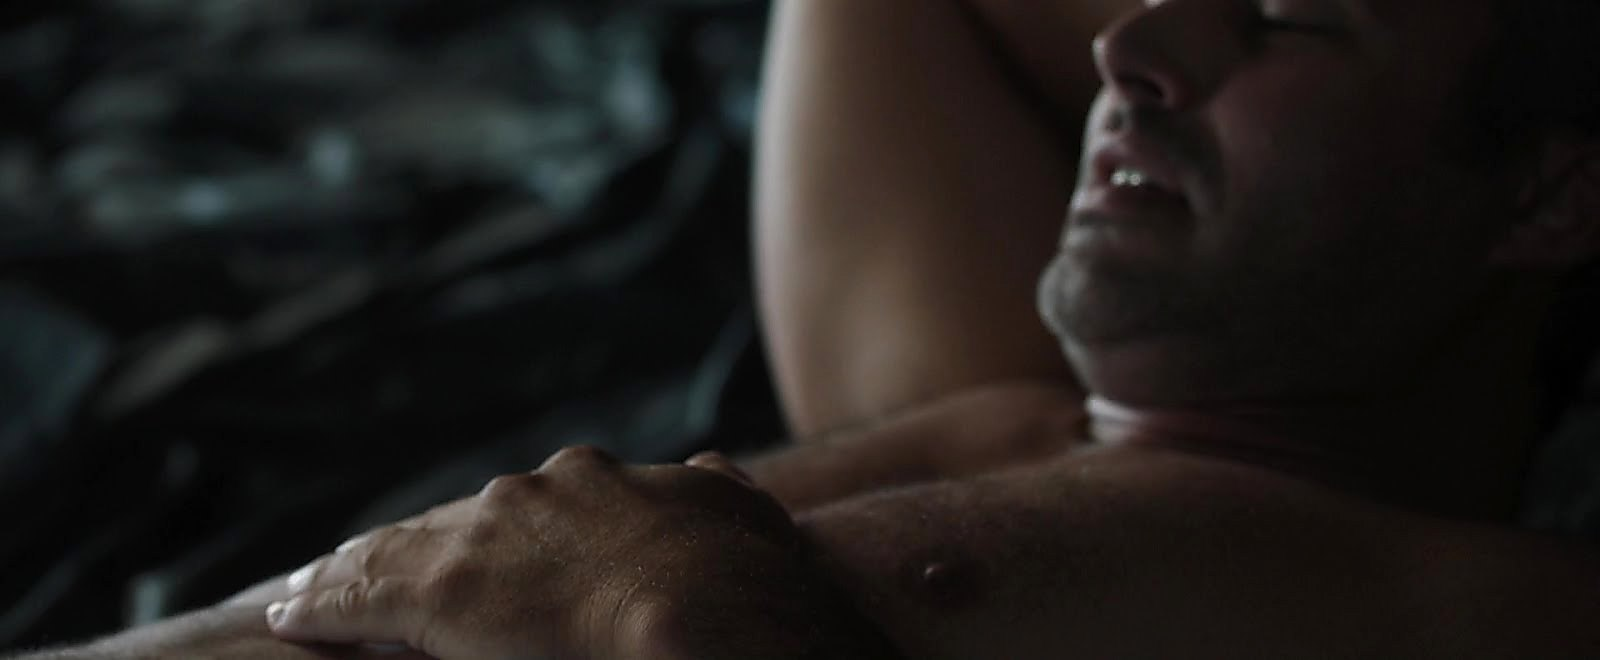 Taylor Kinney sexy shirtless scene November 10, 2018, 6am